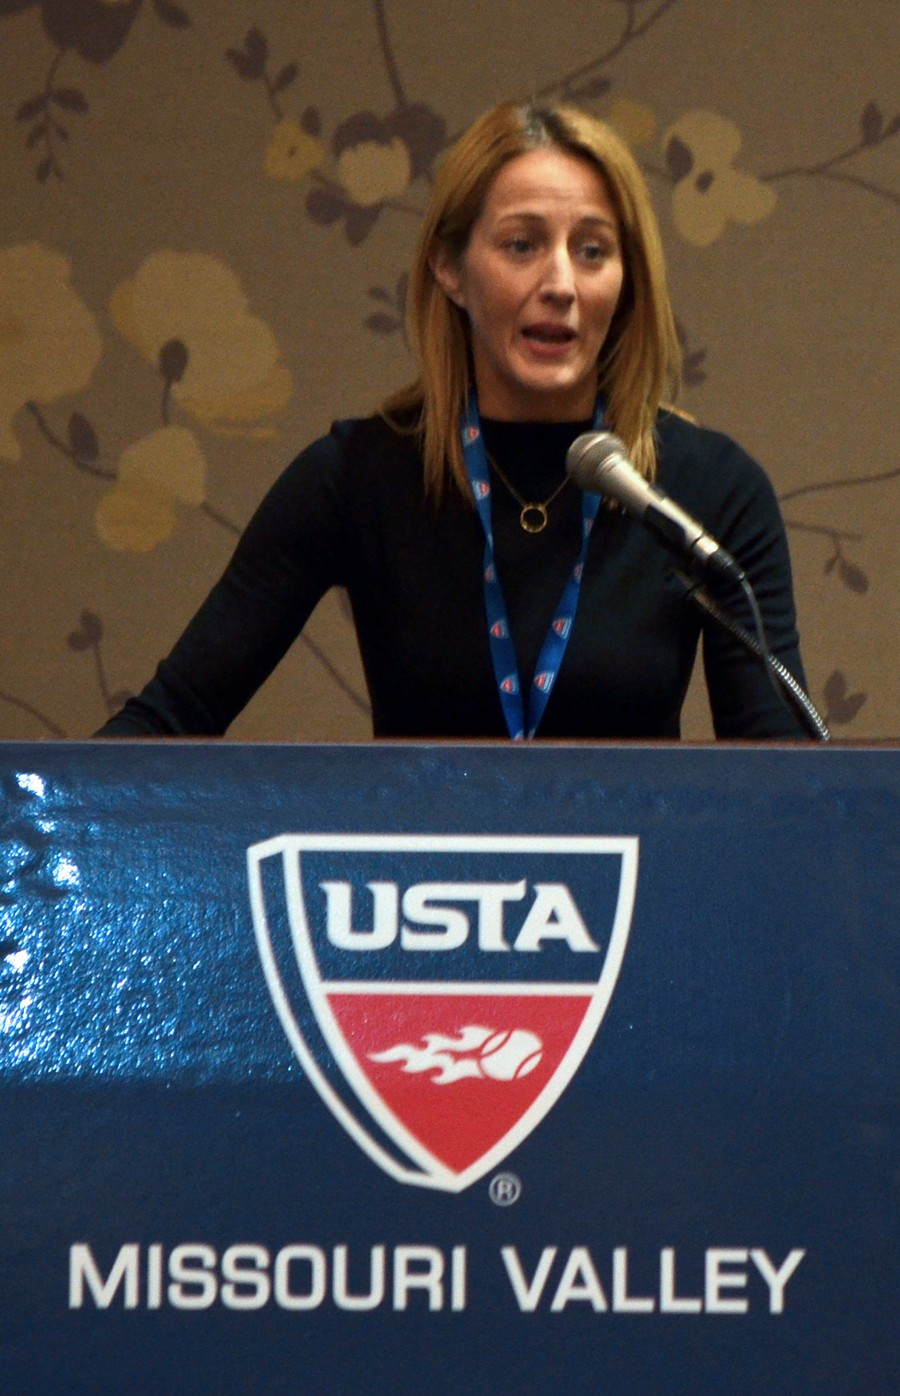 annual conference wraps up for general news news usta the opening session featured sherry elinsky managing director of marketing for the usta elinsky gave a presentation about the membership innovation study